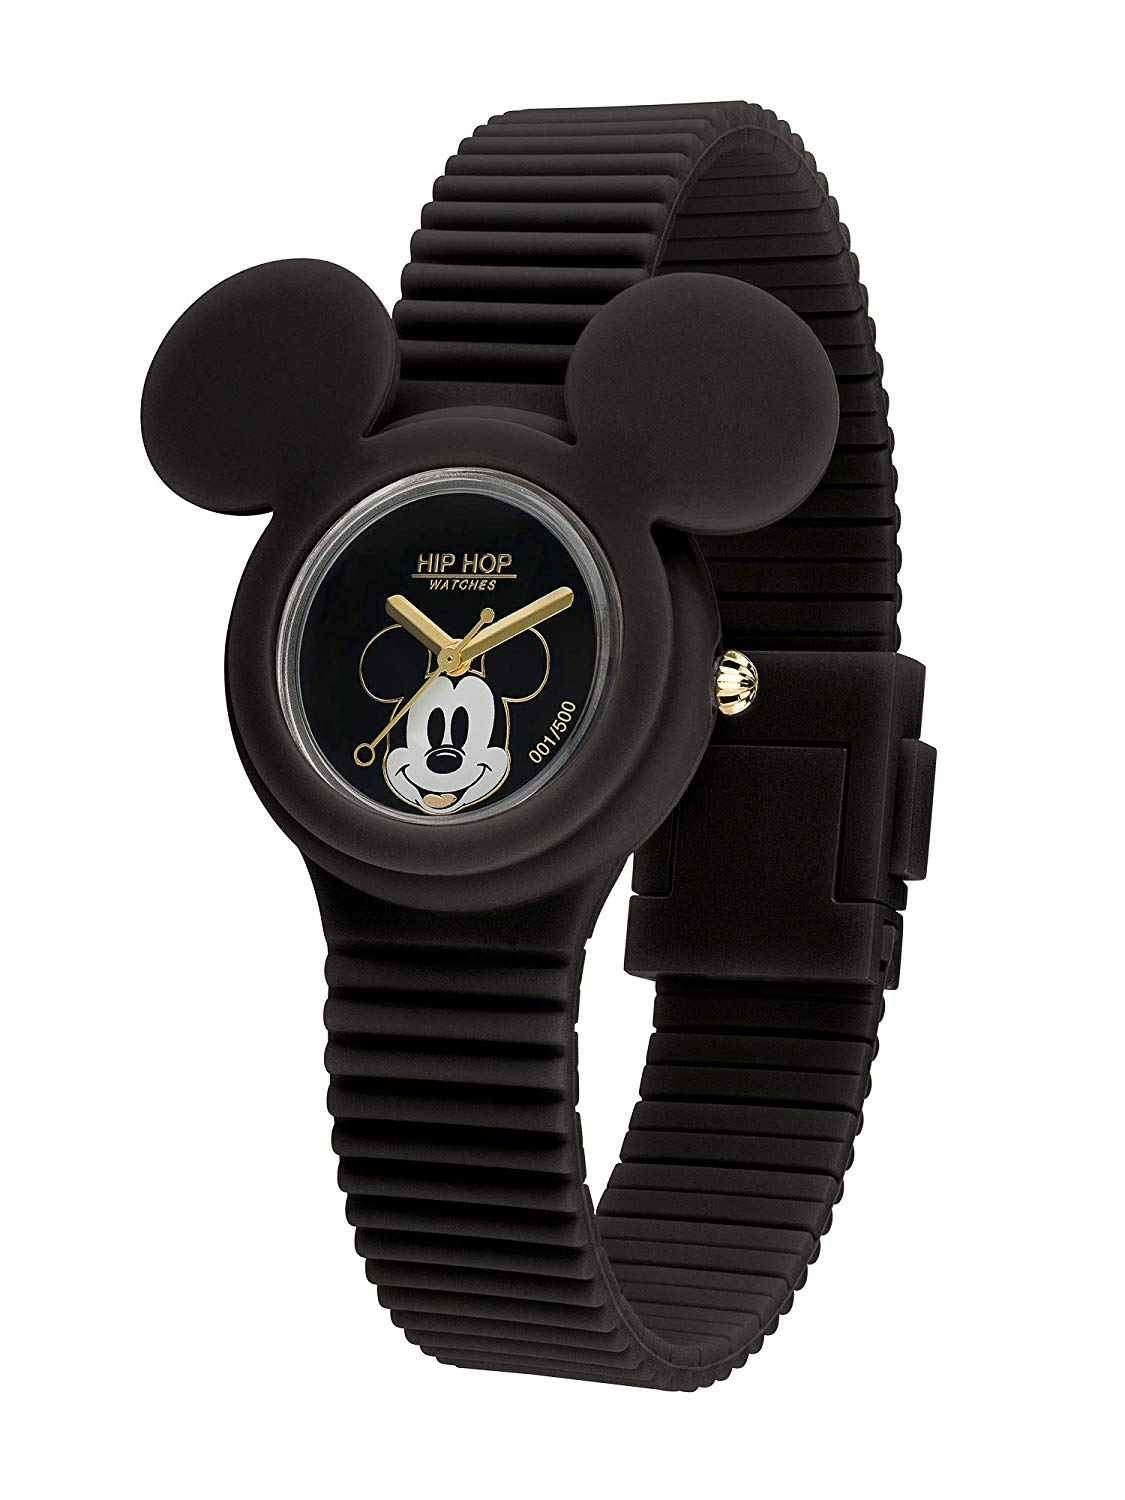 Watches Watch Only Time Hip Hop Hwu0931 Analogue Disney Collection